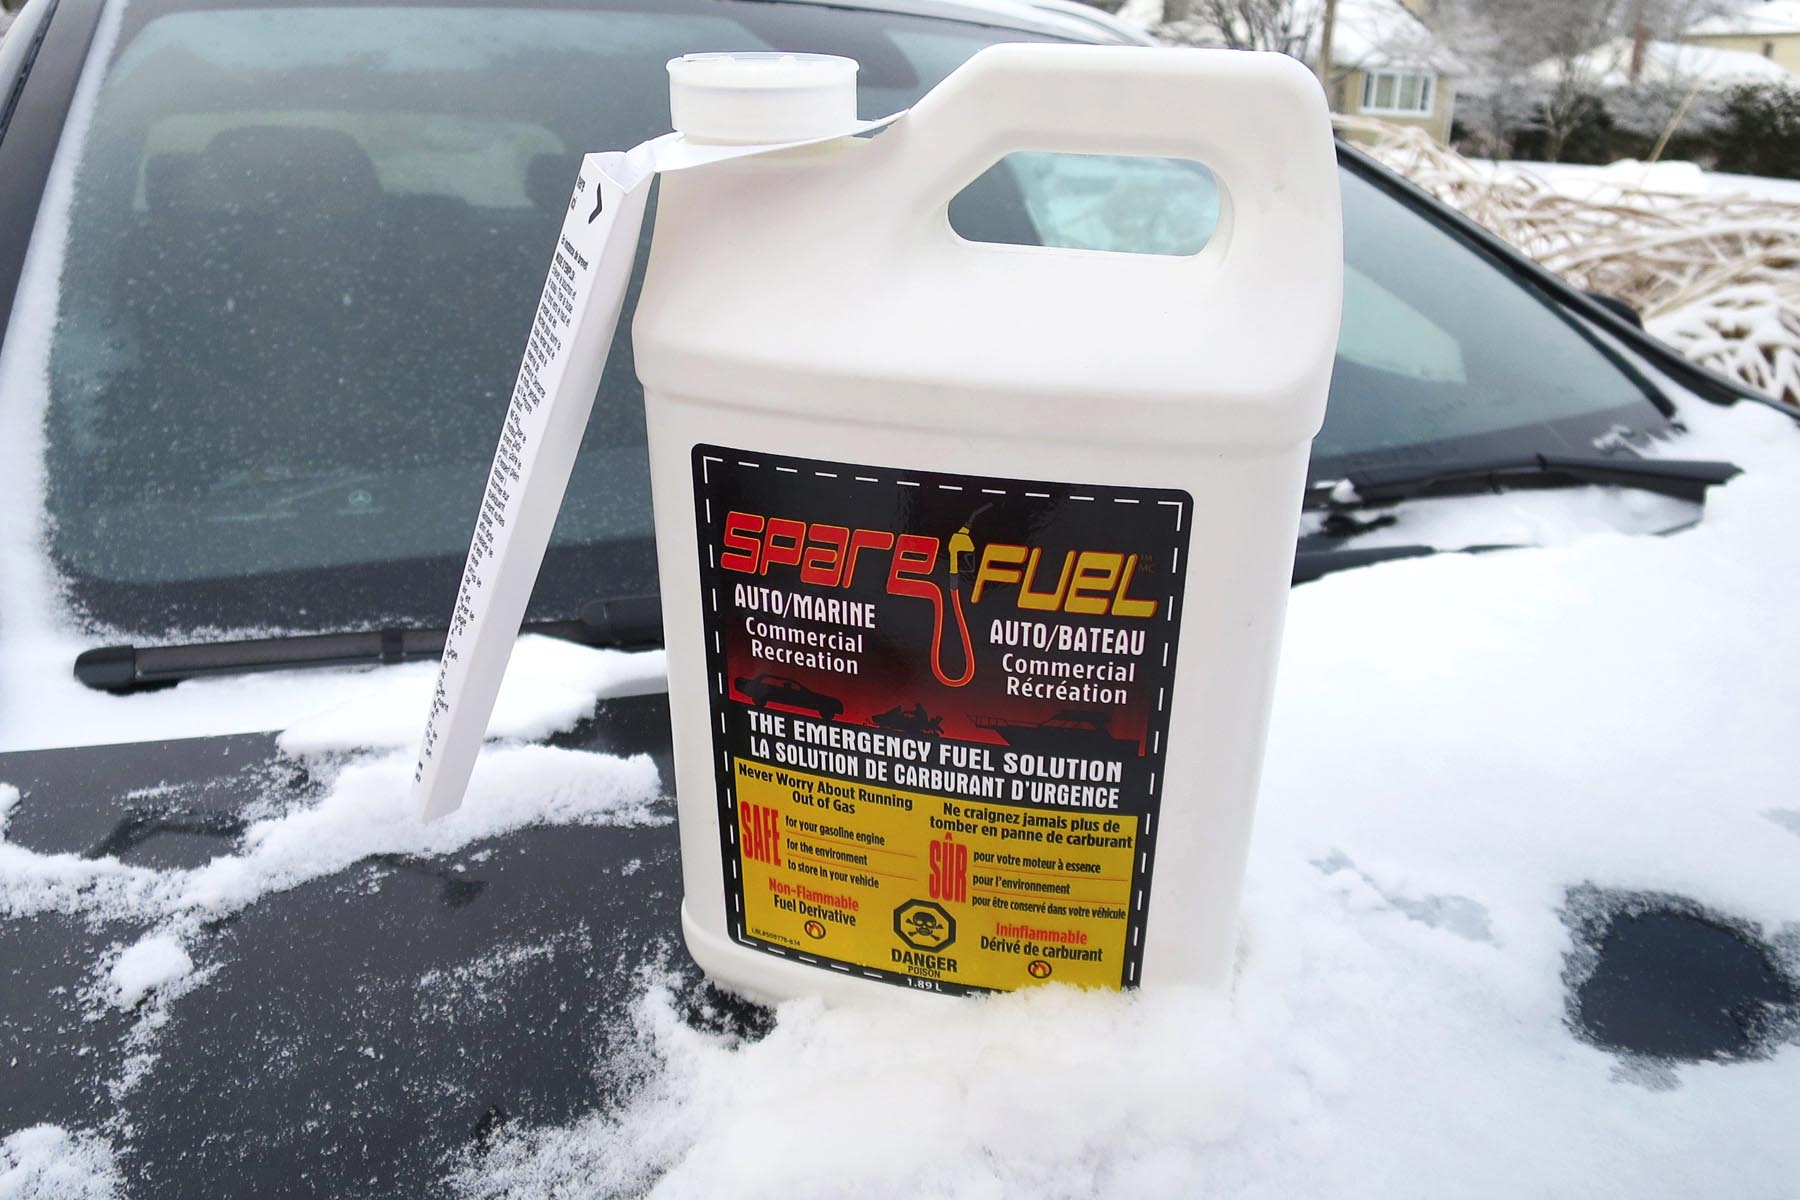 Williams Buick Gmc >> Product Review: Spare Fuel - Autos.ca